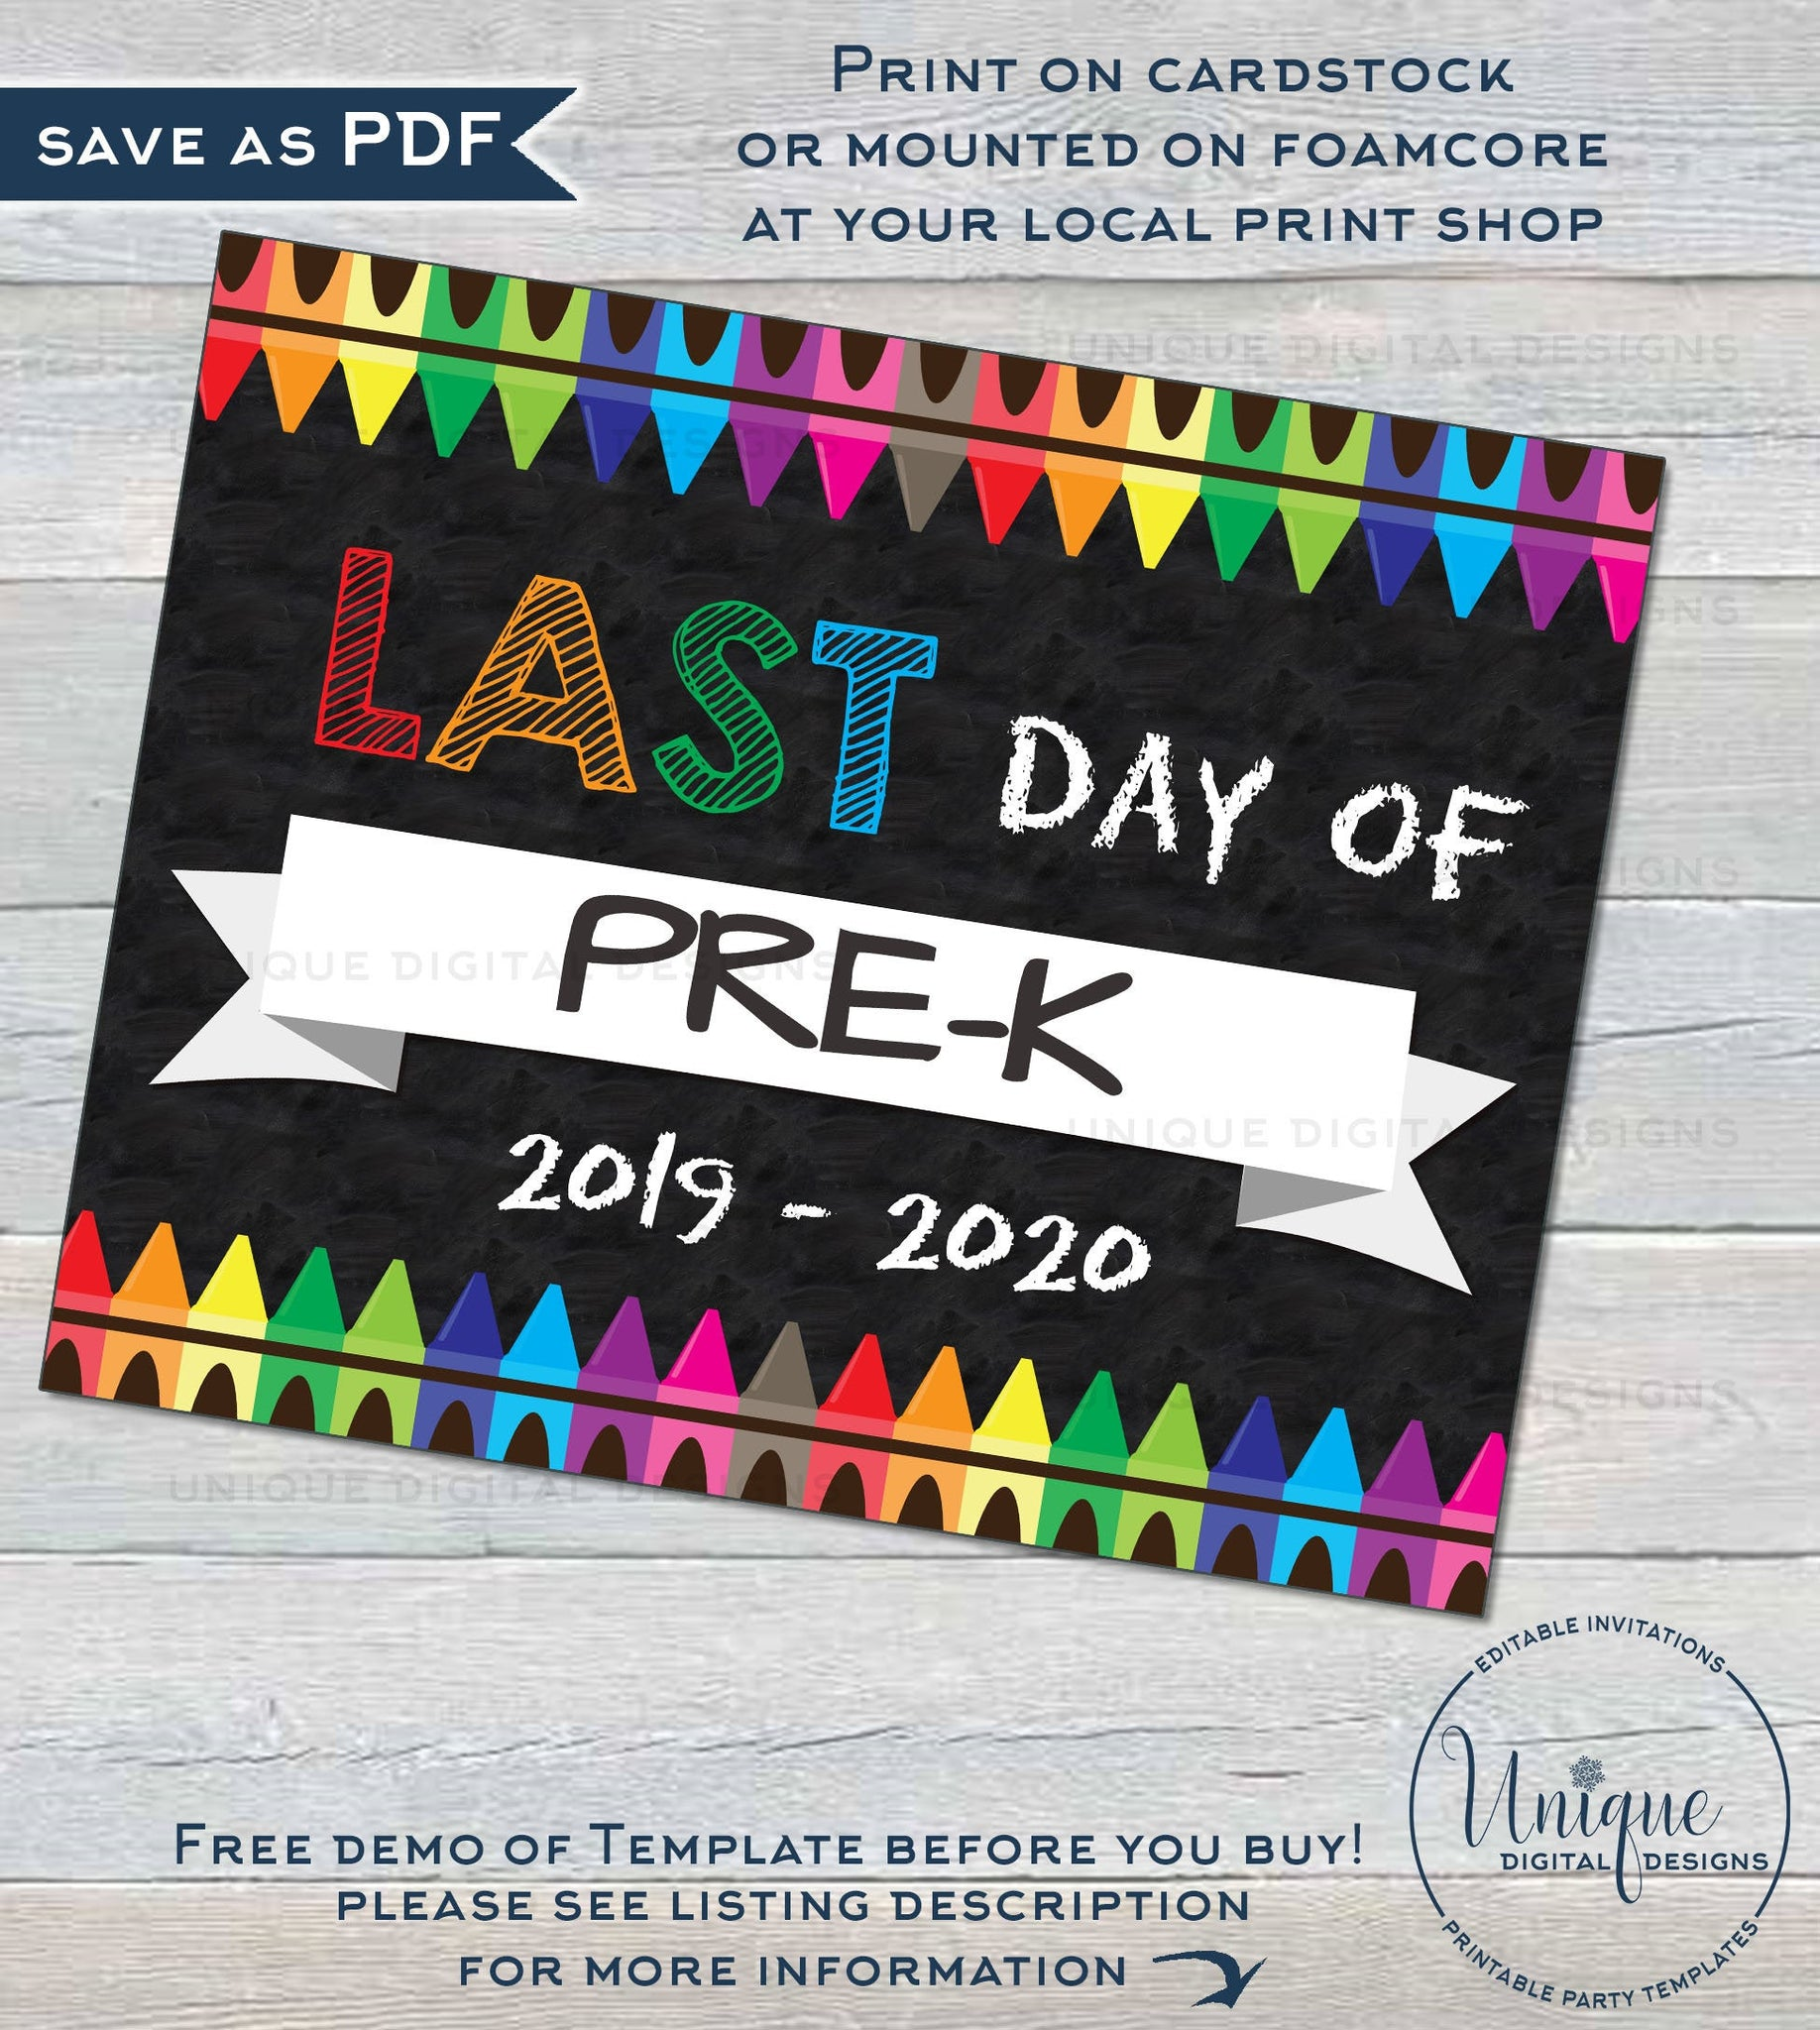 photograph about First Day of Pre K Sign Printable named Printable 1st working day of Higher education Chalkboard Indicator reusable 1st